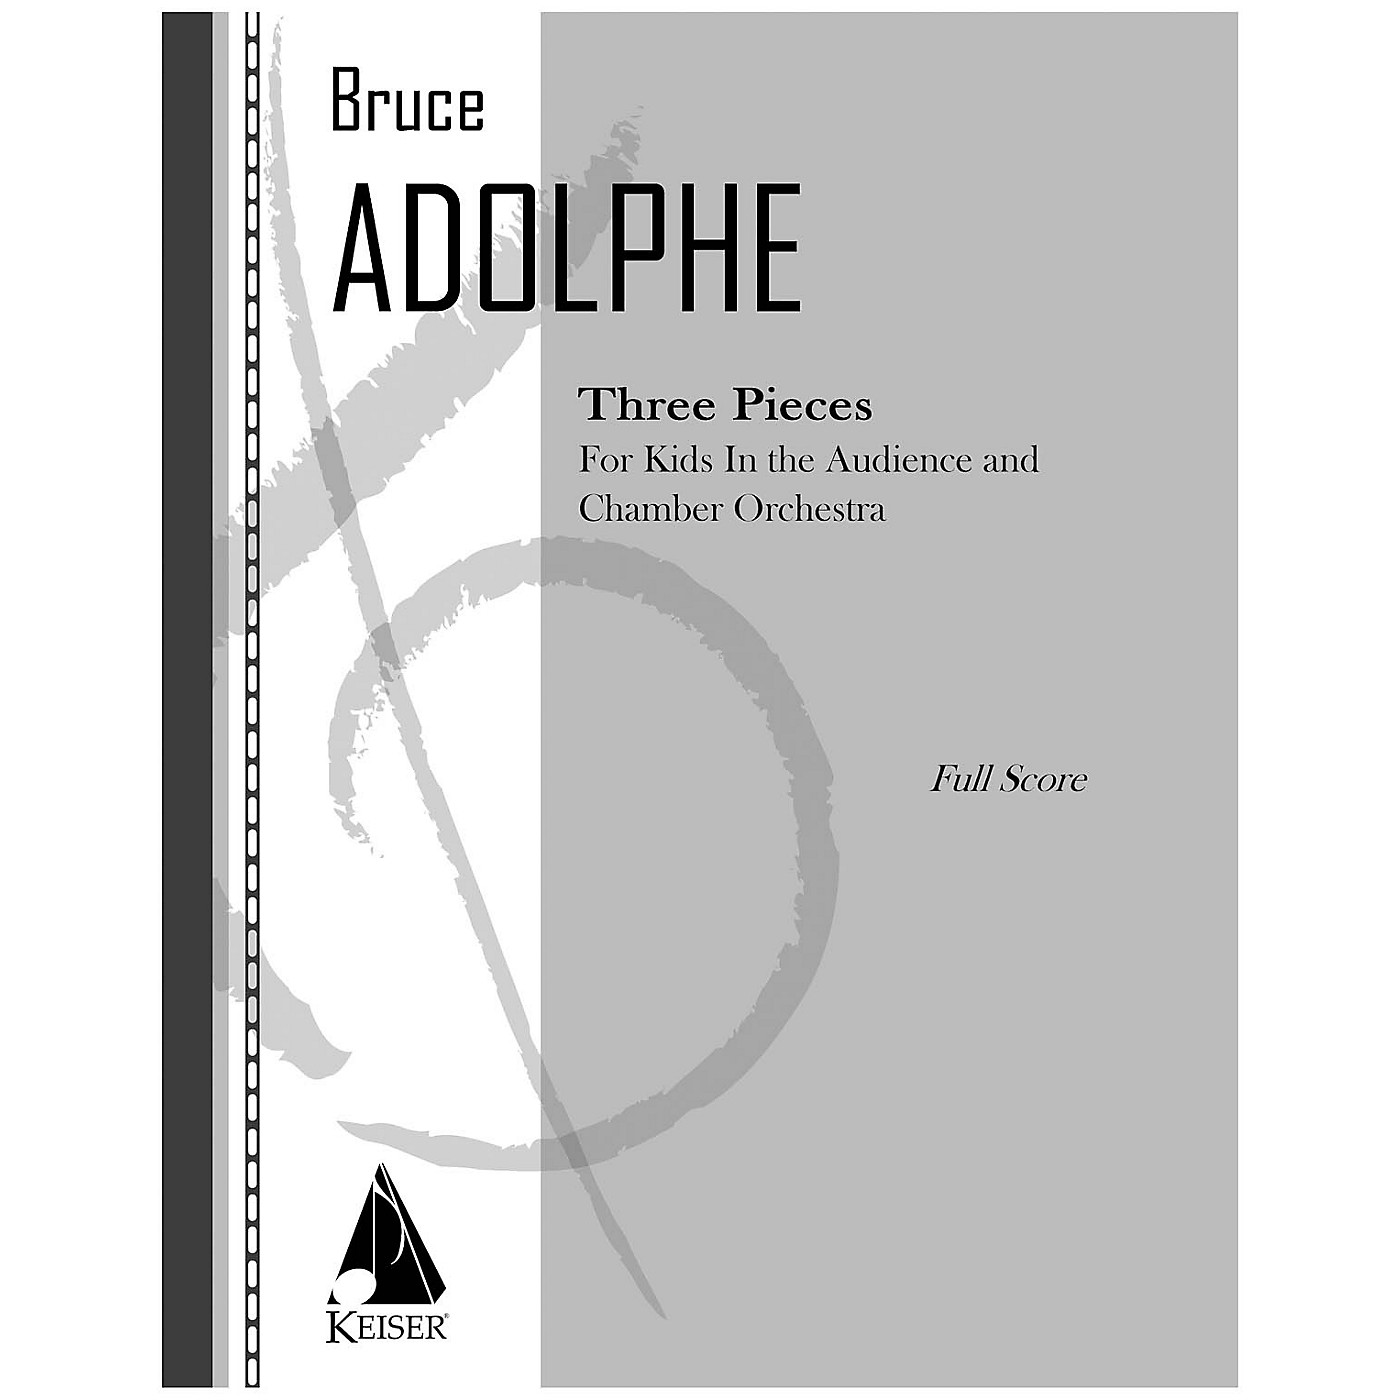 Lauren Keiser Music Publishing 3 Pieces (For Kids in the Audience and Chamber Orchestra) Full Score Composed by Bruce Adolphe thumbnail